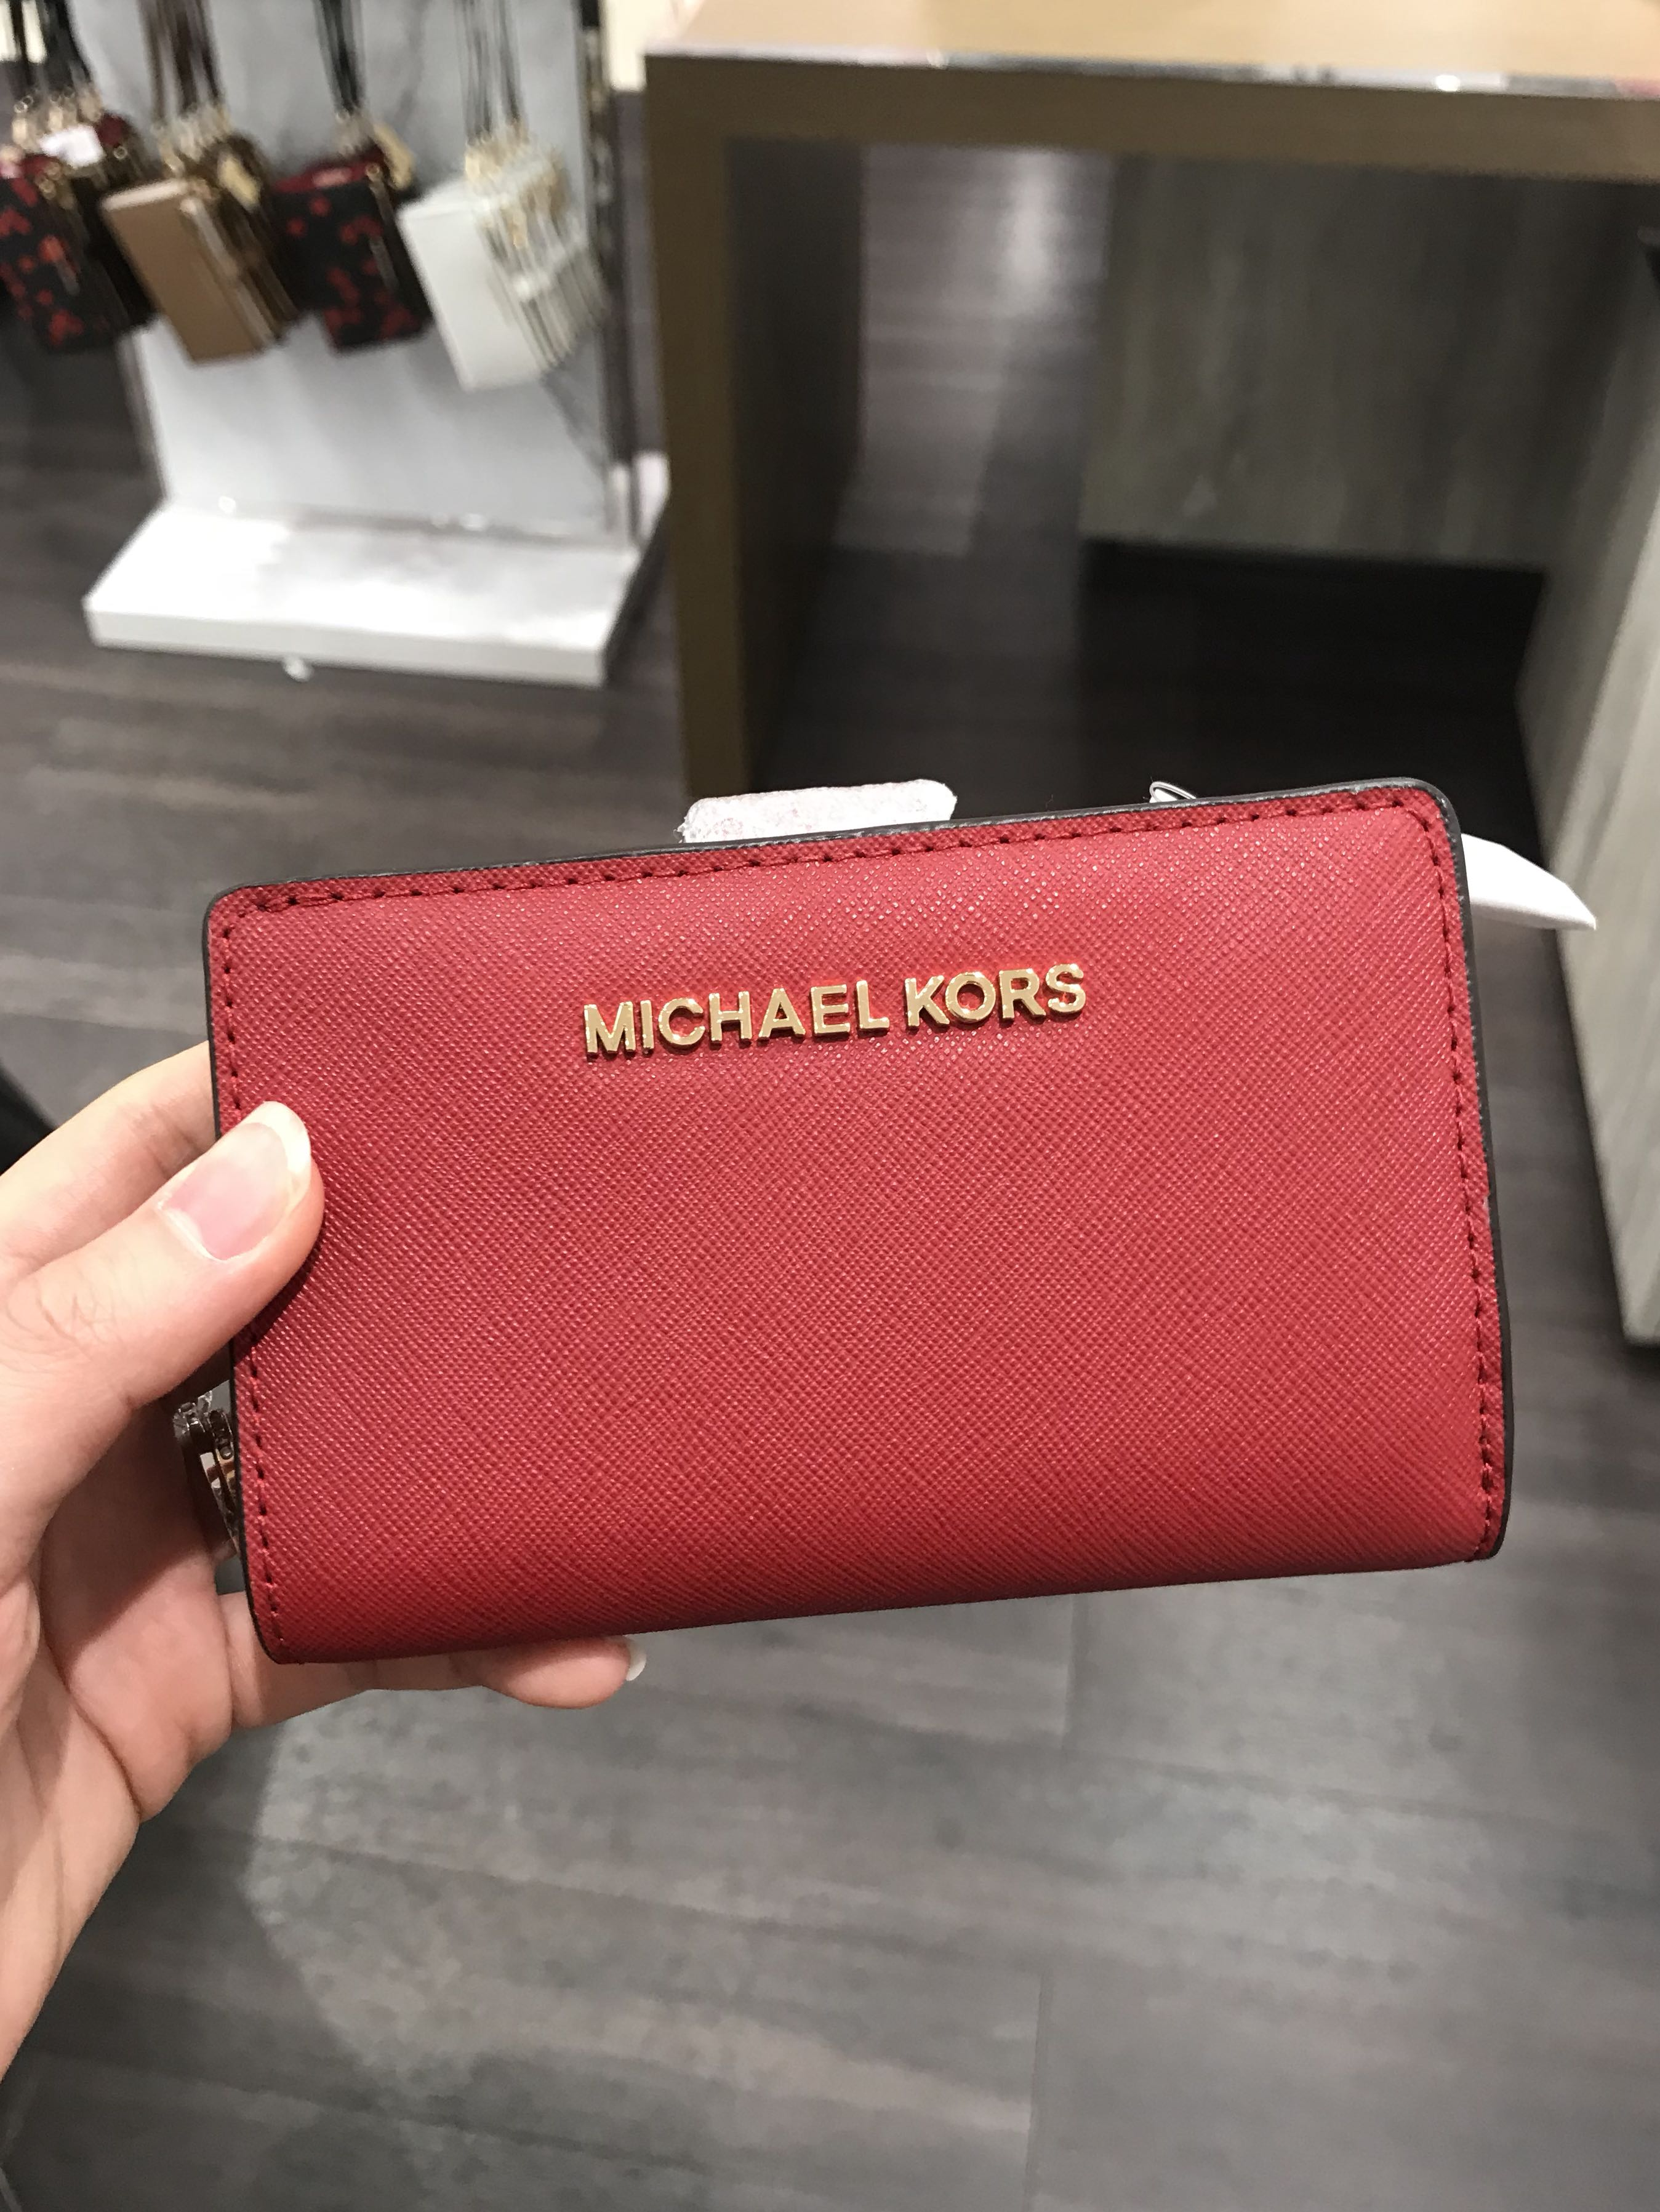 992eb1d8d4e6 Michael Kors Jet Set Travel Bifold Zip coin Wallet Red, Women's Fashion,  Bags & Wallets, Wallets on Carousell